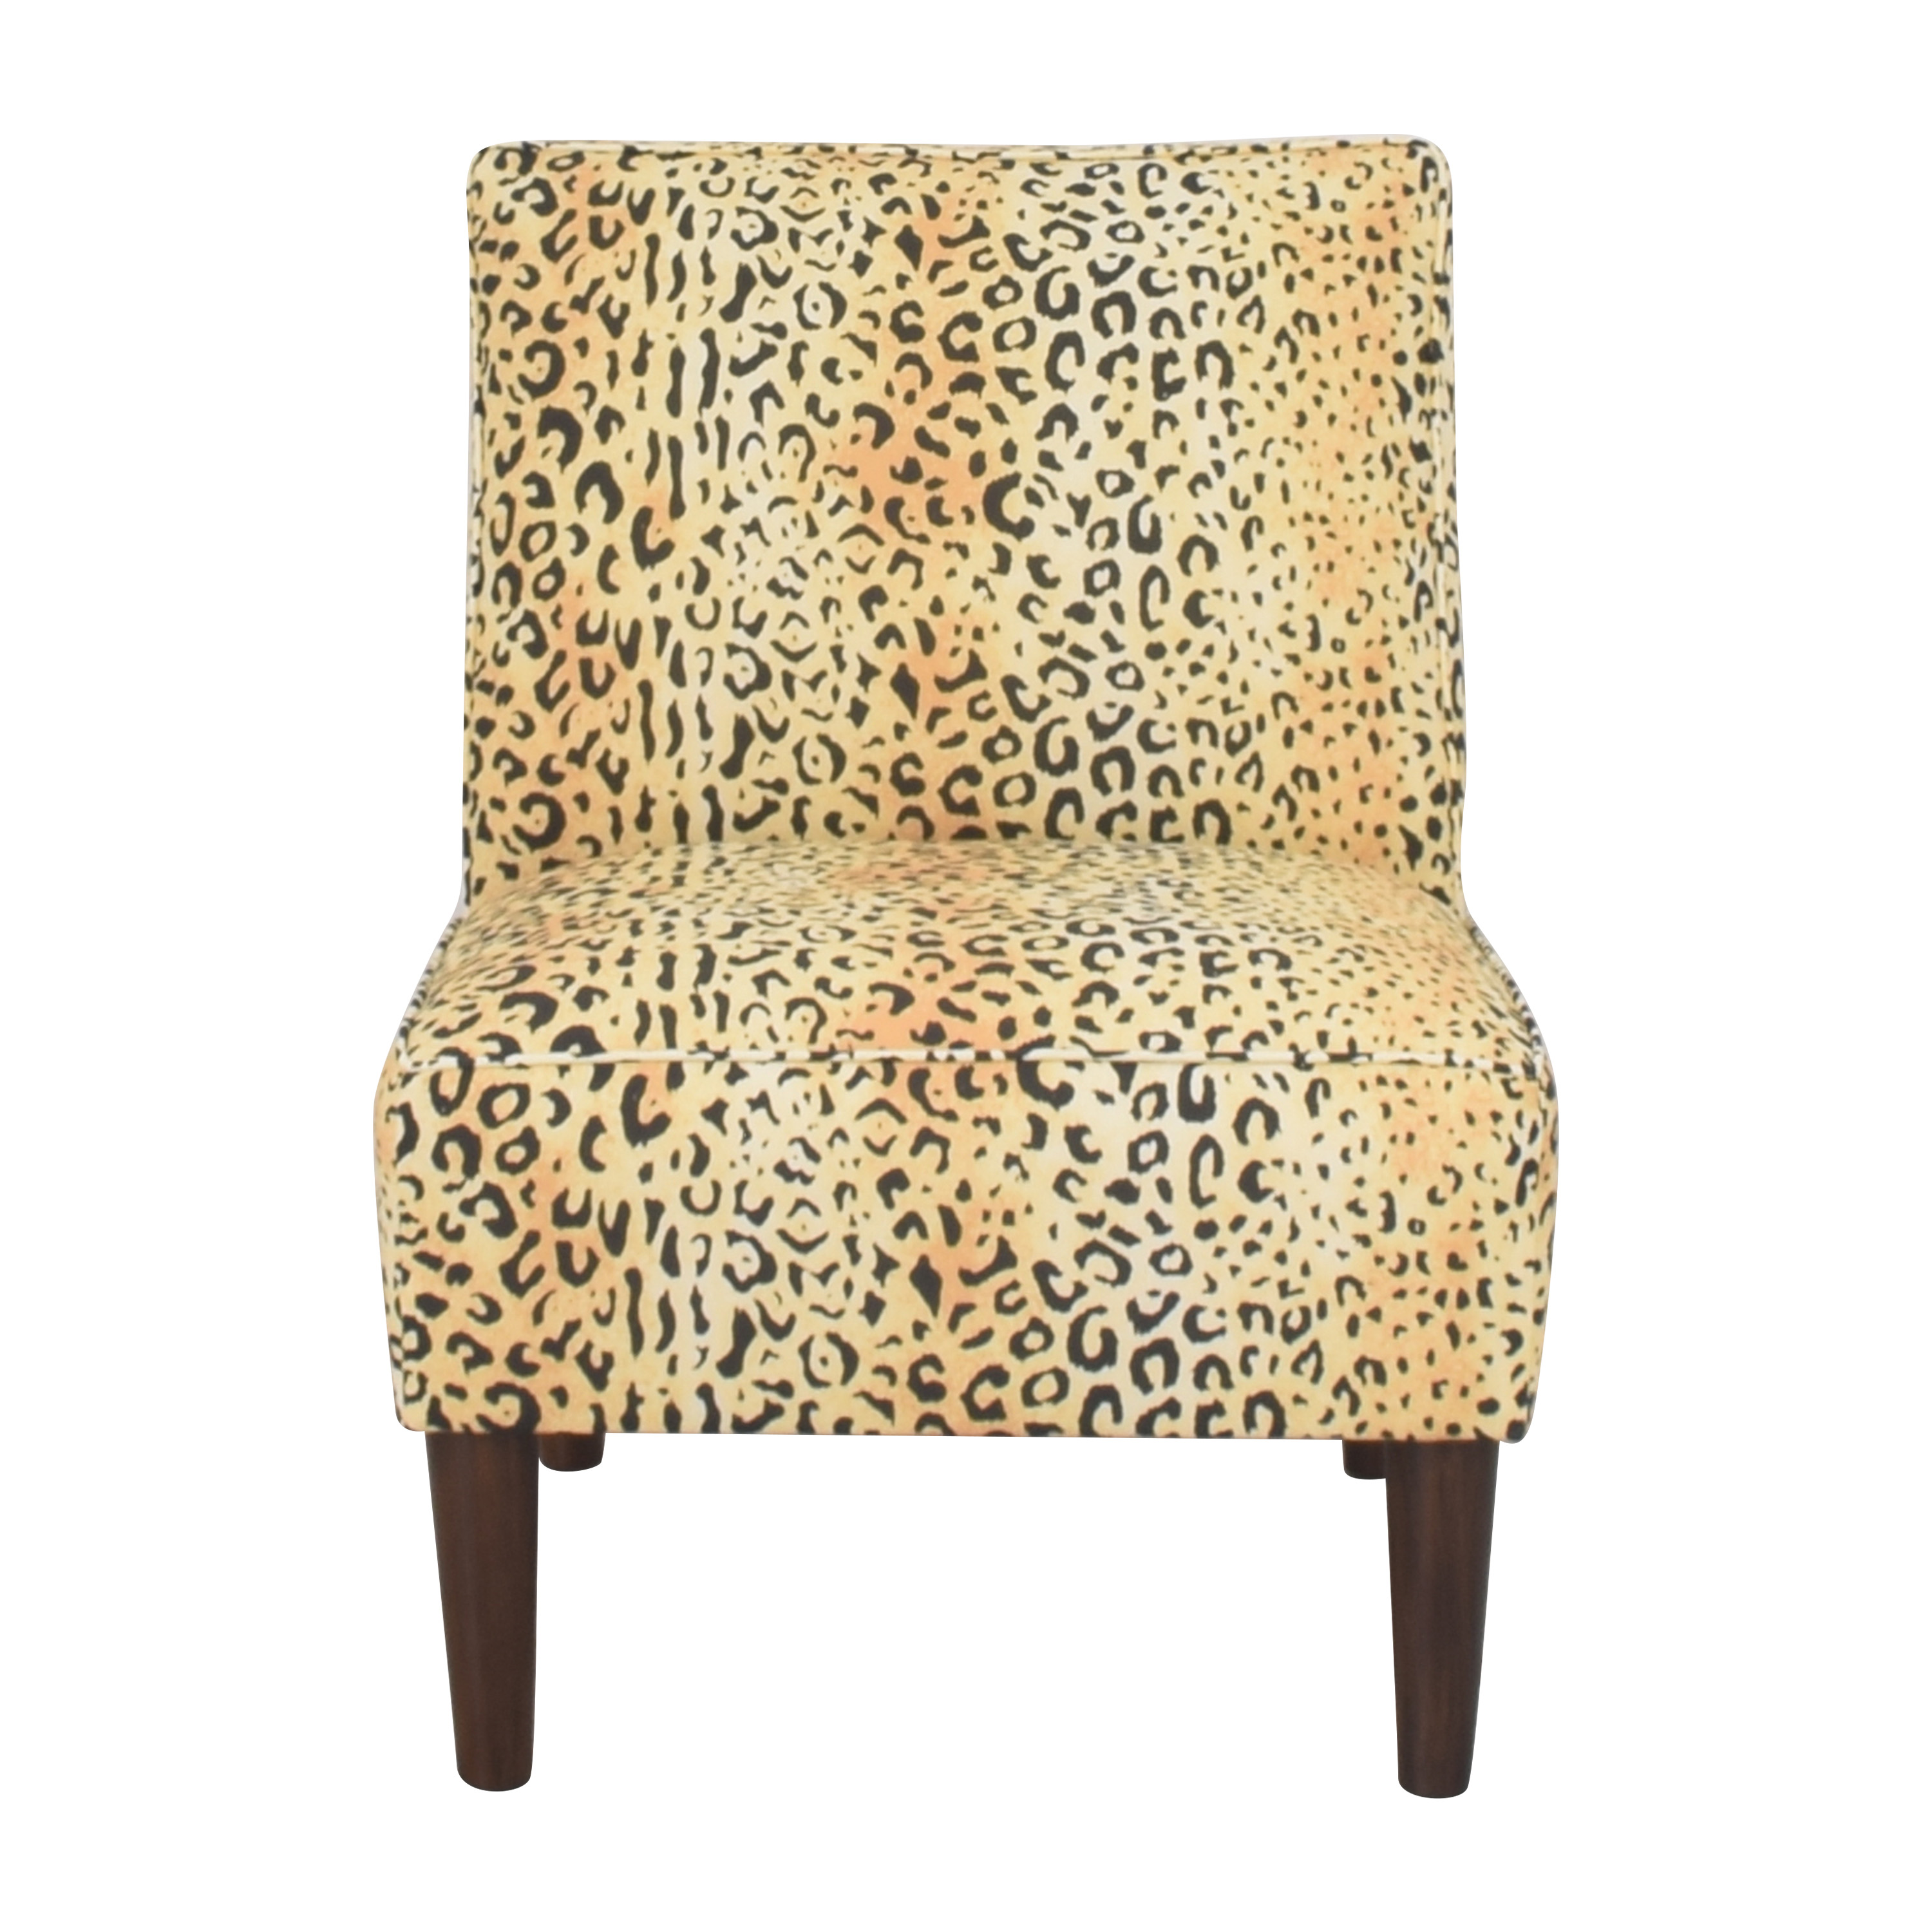 The Inside The Inside Slipper Chair Accent Chairs